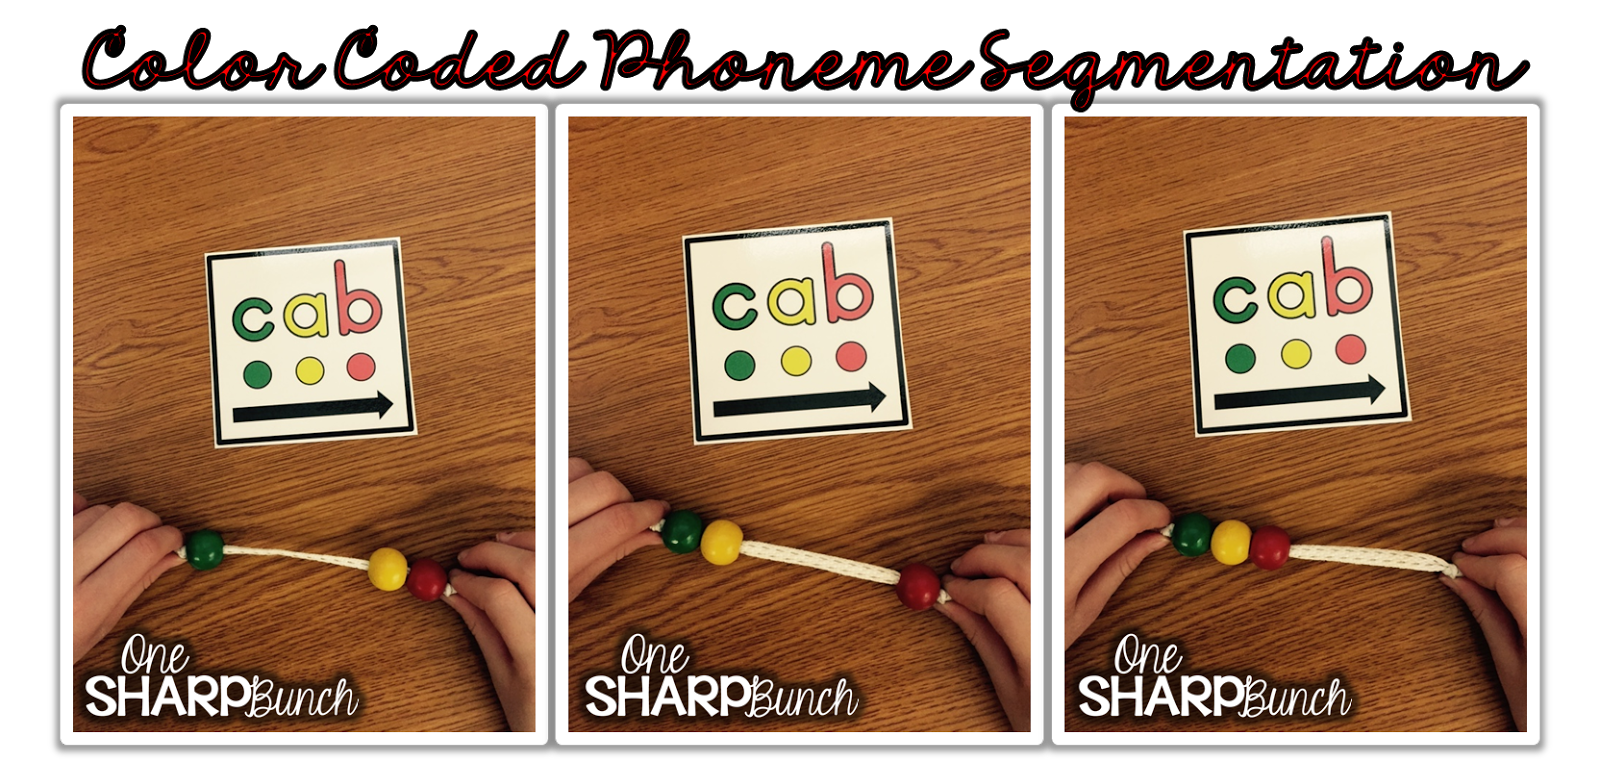 https://www.teacherspayteachers.com/Product/CVC-Sliders-Phoneme-Segmentation-1812478